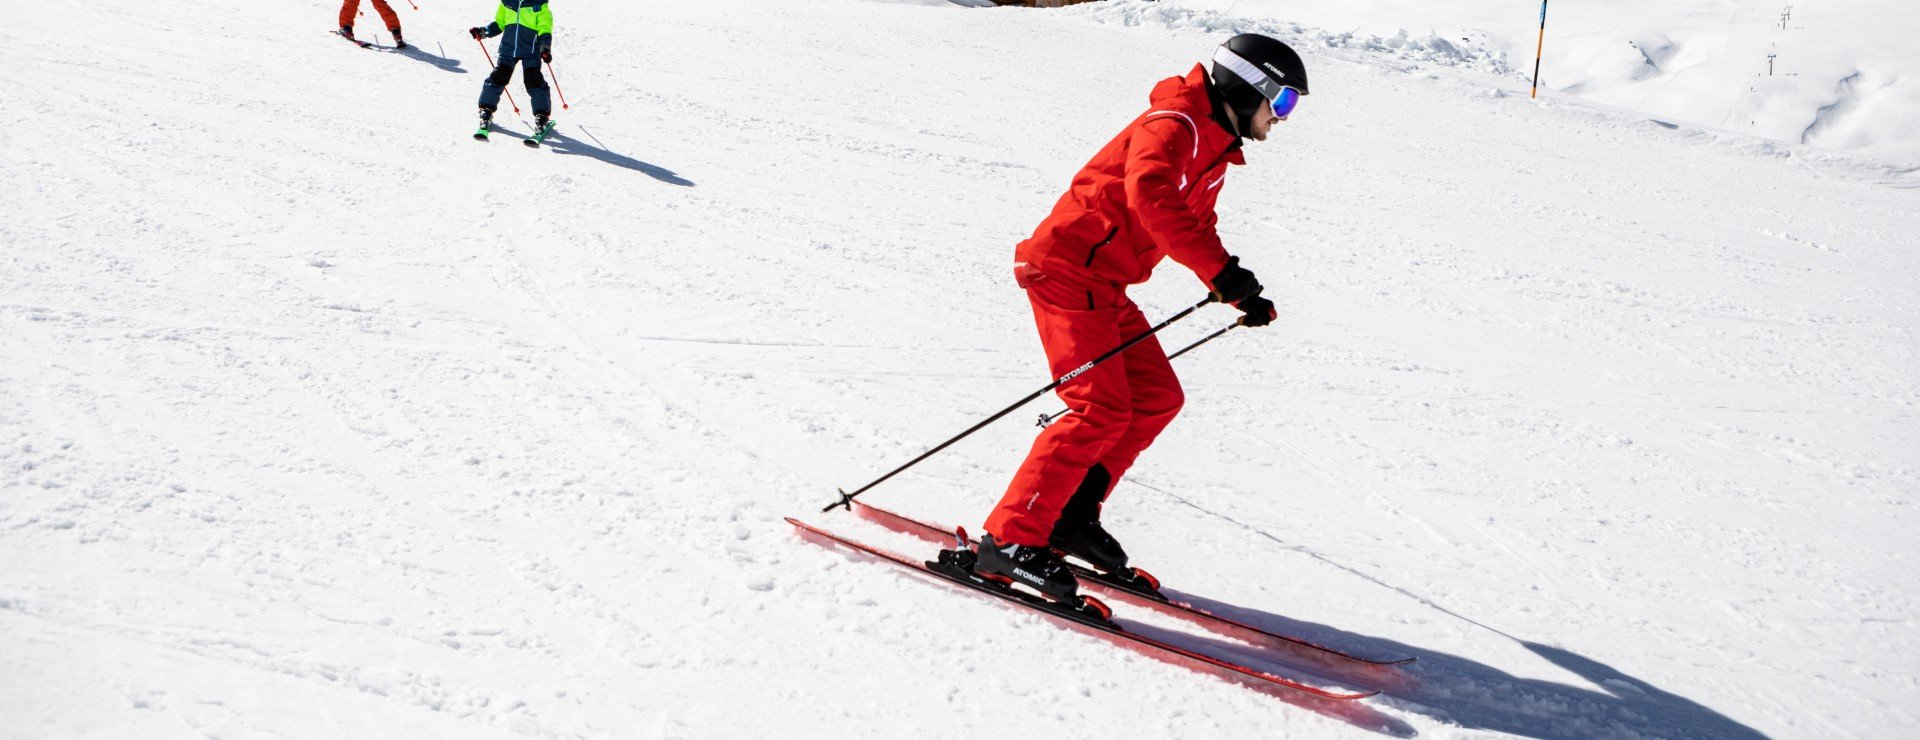 A ski instructor is showing the parallel turns technique.